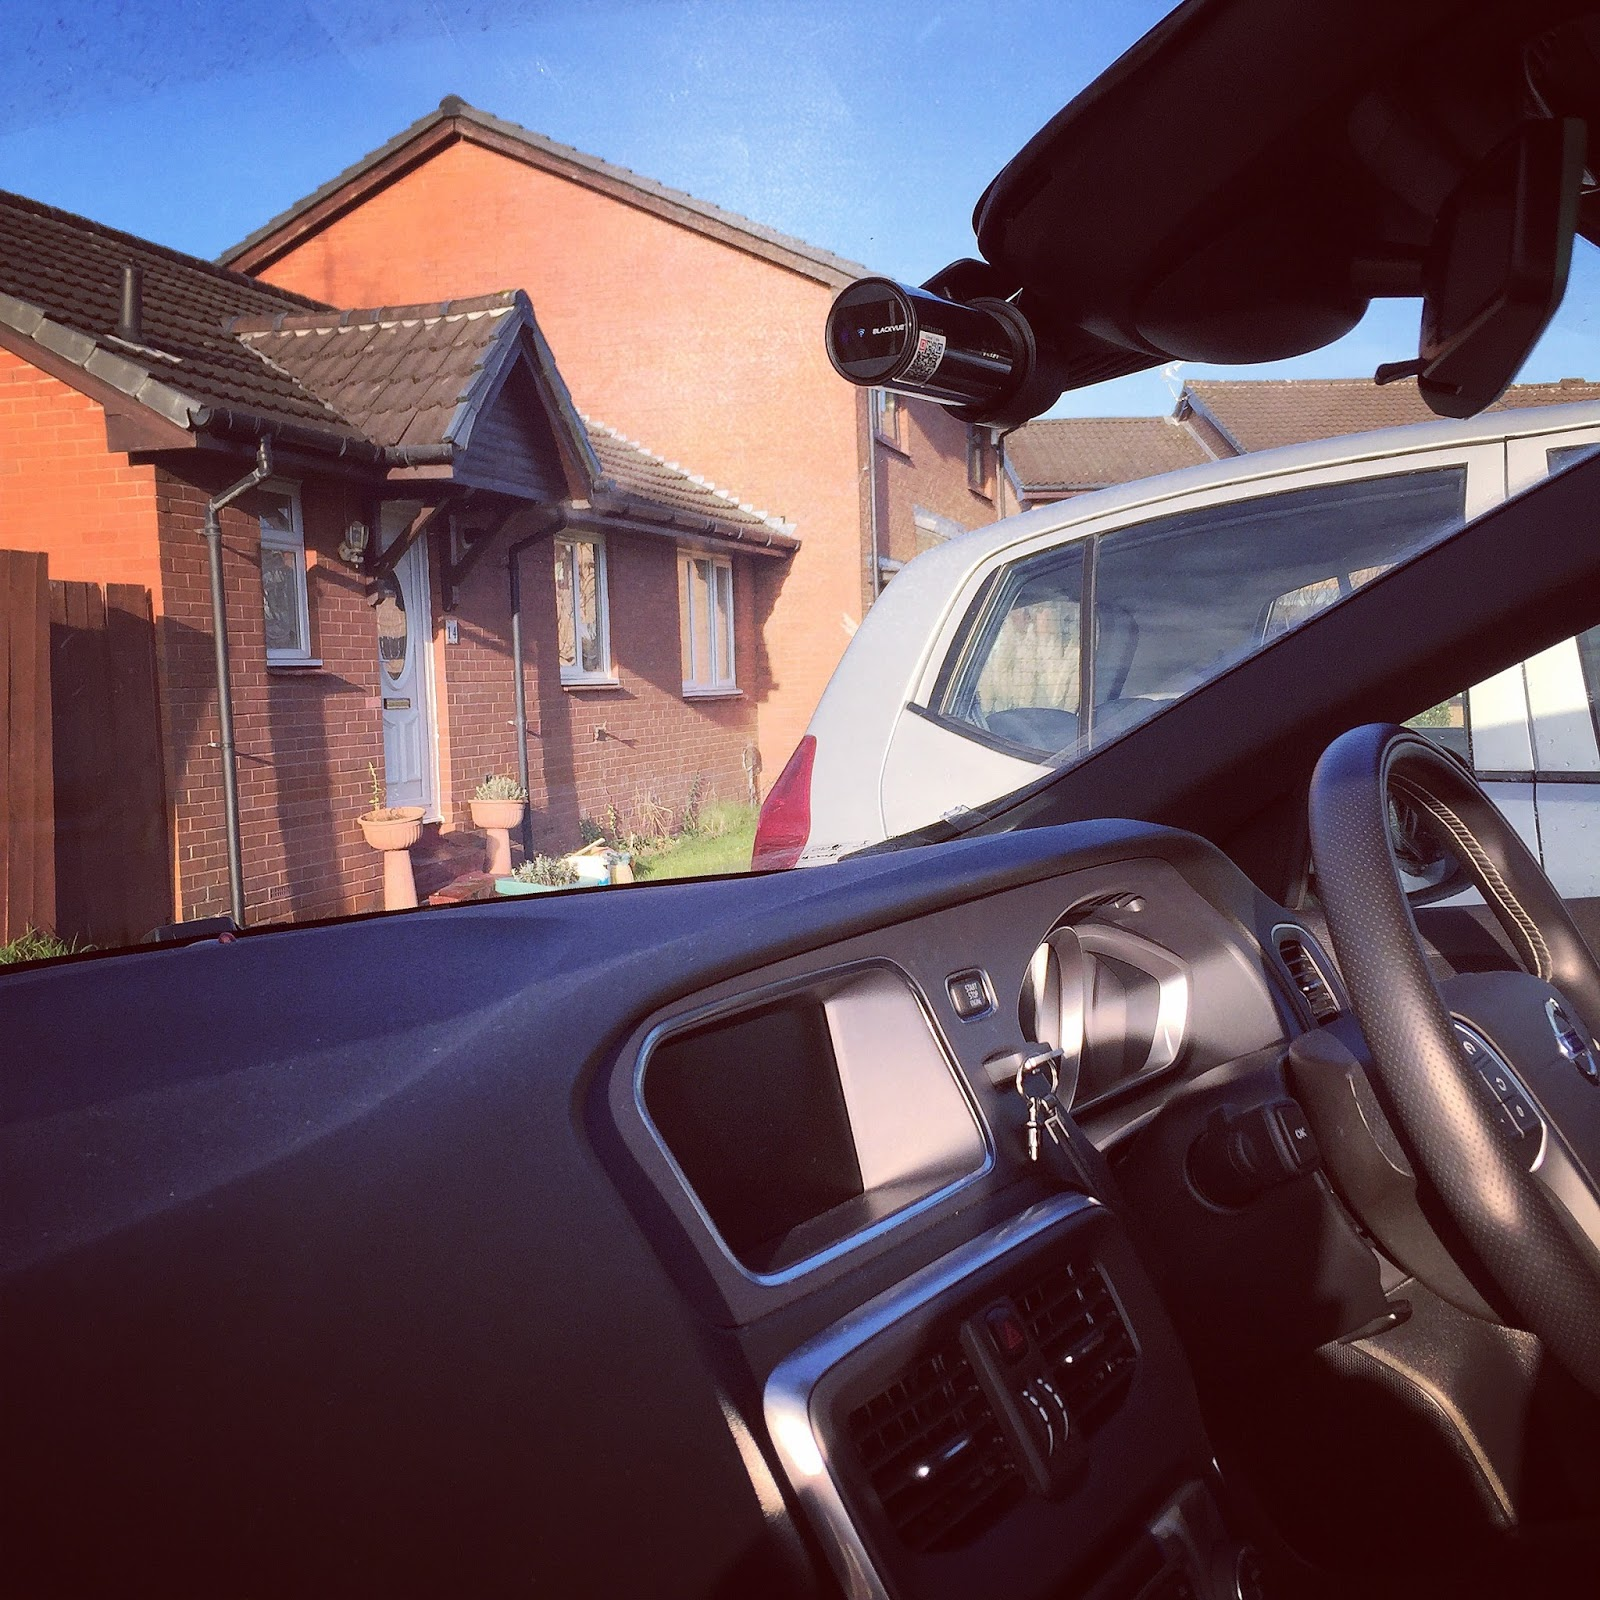 Dash Camera Installation Volvo V40 Glasgow Cam Man Mercedes C250 Fuse Box From The Team Here At Thank You For Reading